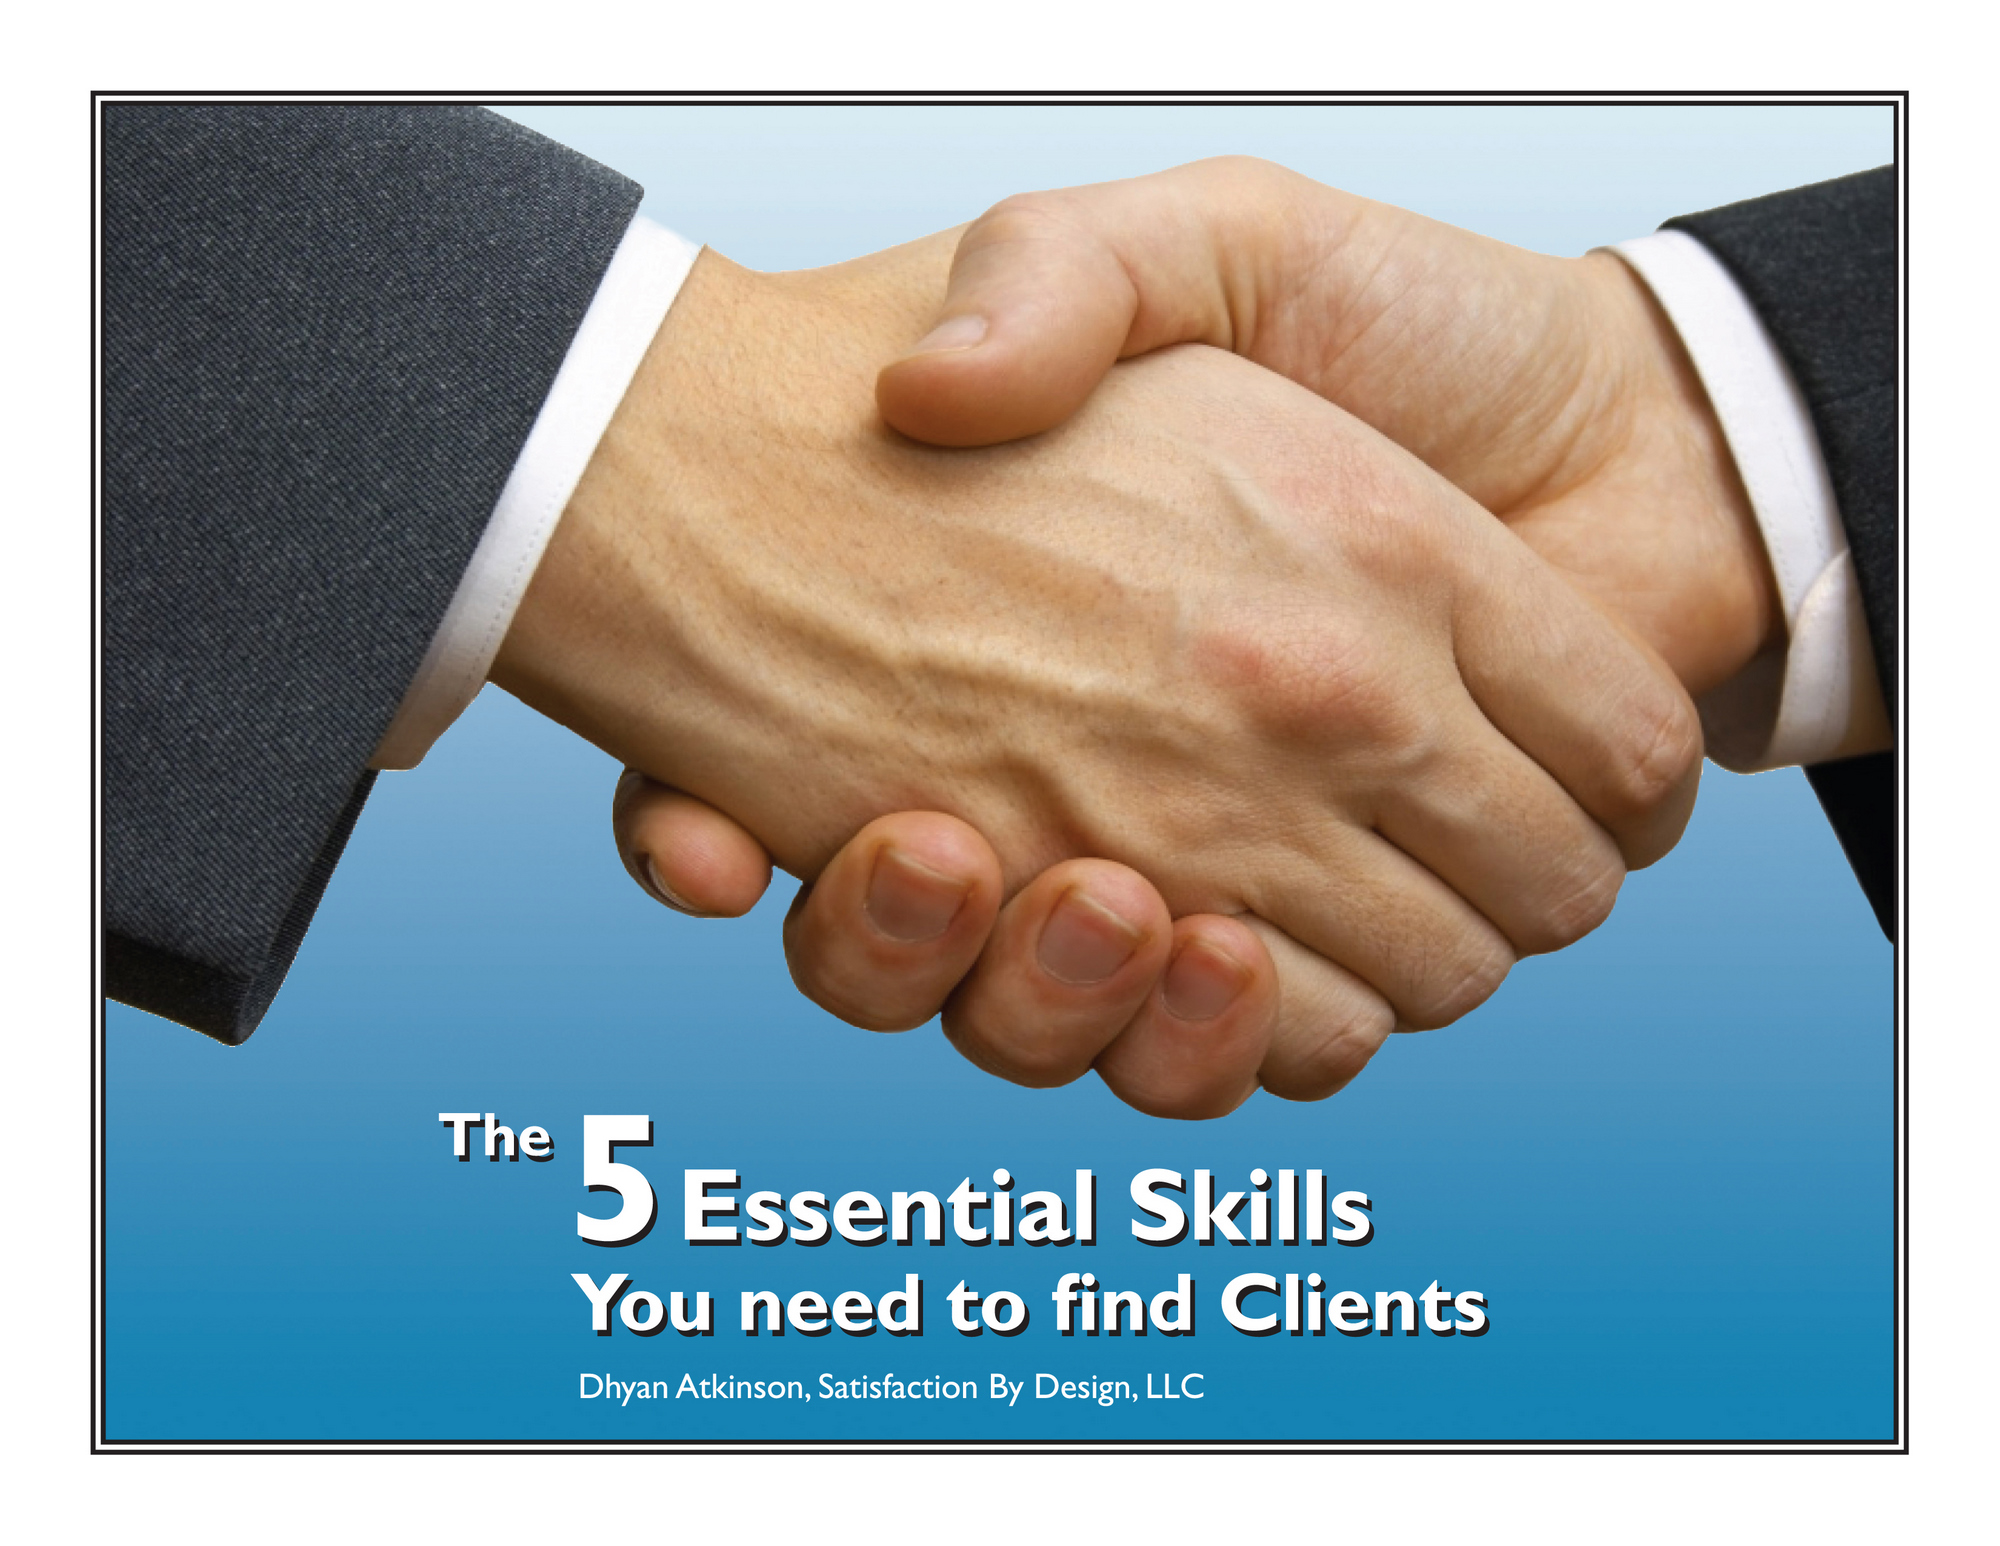 Business Communication Book an E-book on Business Skills